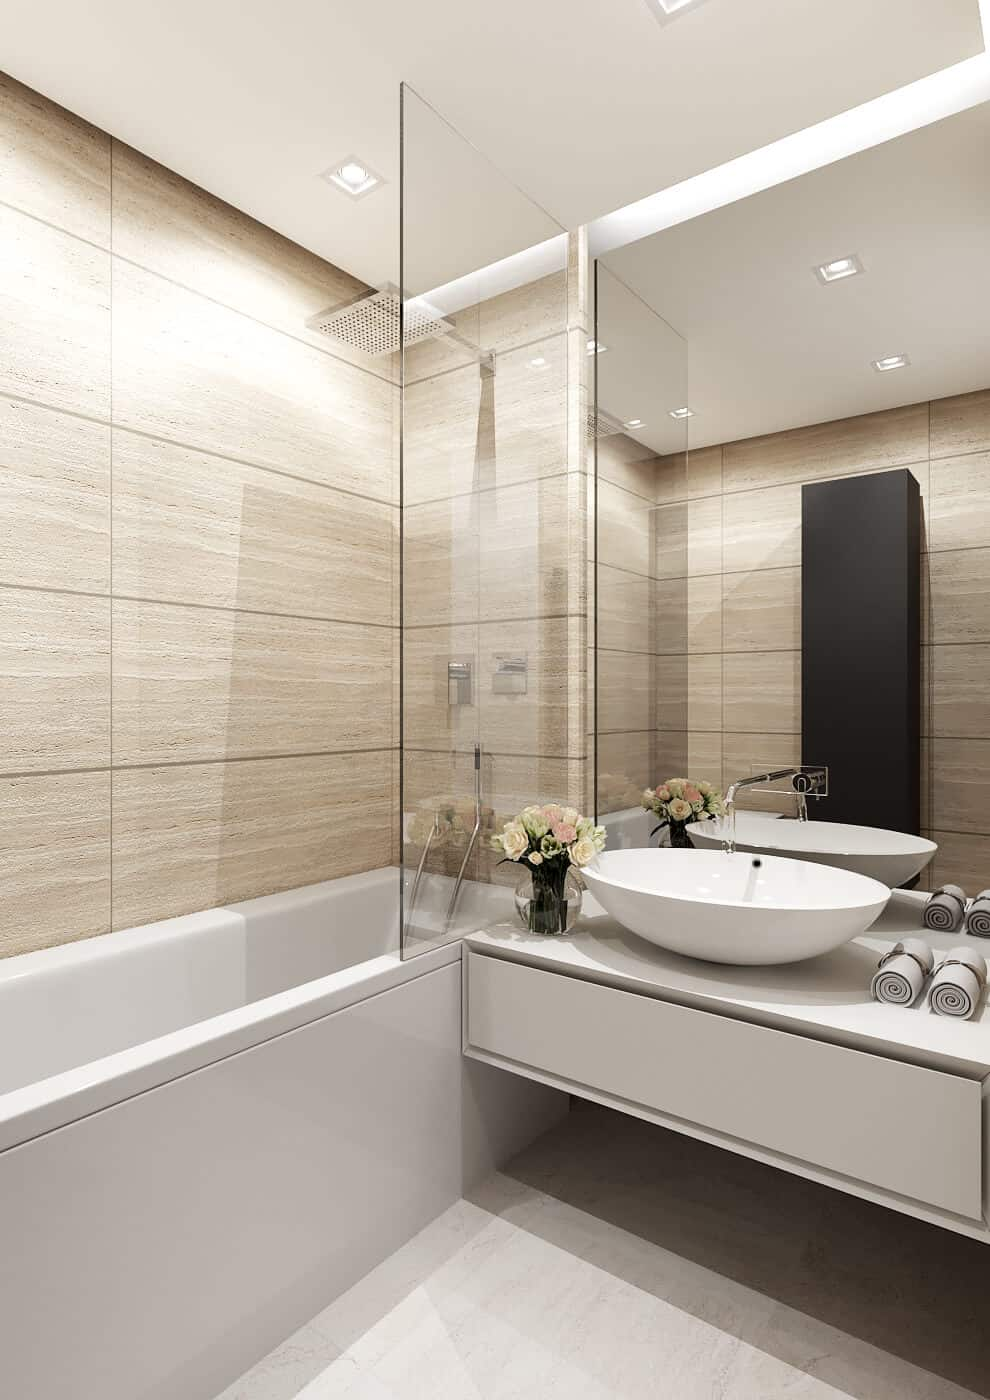 Bathroom takes advantage of light wood-look tiles to create an elegant but homey look